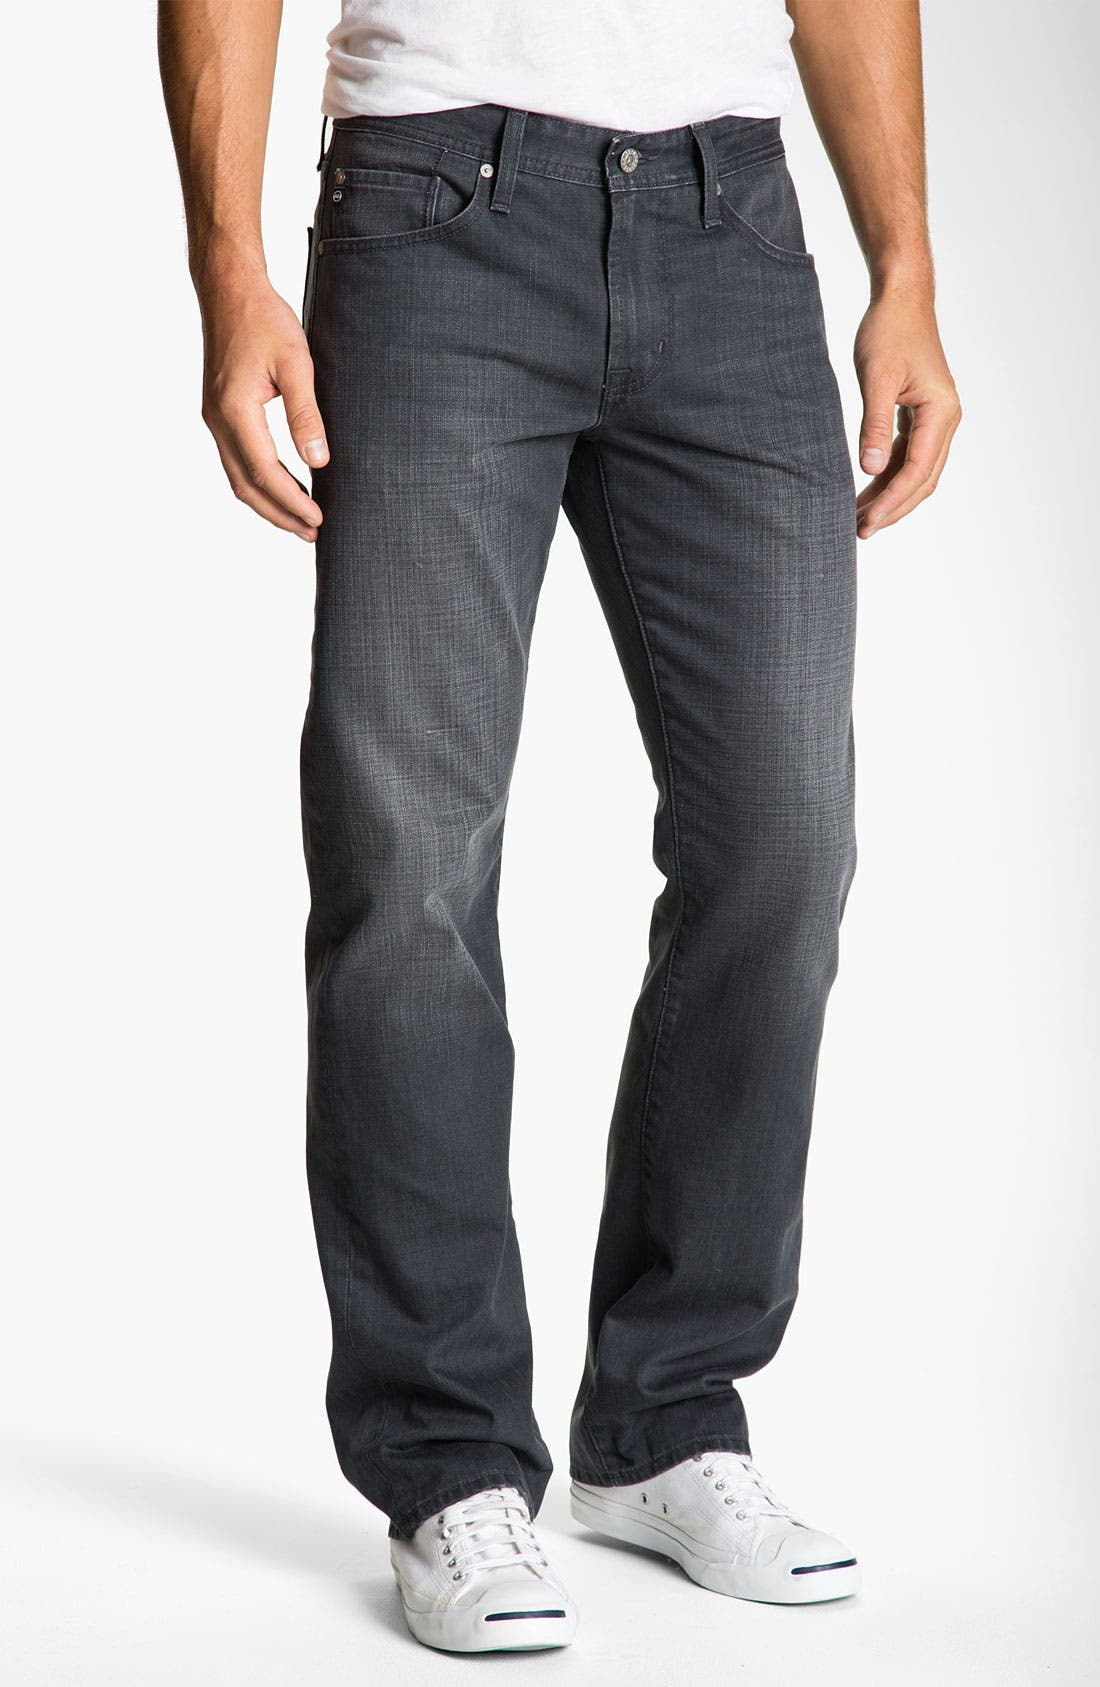 Alternate Image 1 Selected - AG Jeans 'Protégé' Straight Leg Jeans (Cooper)